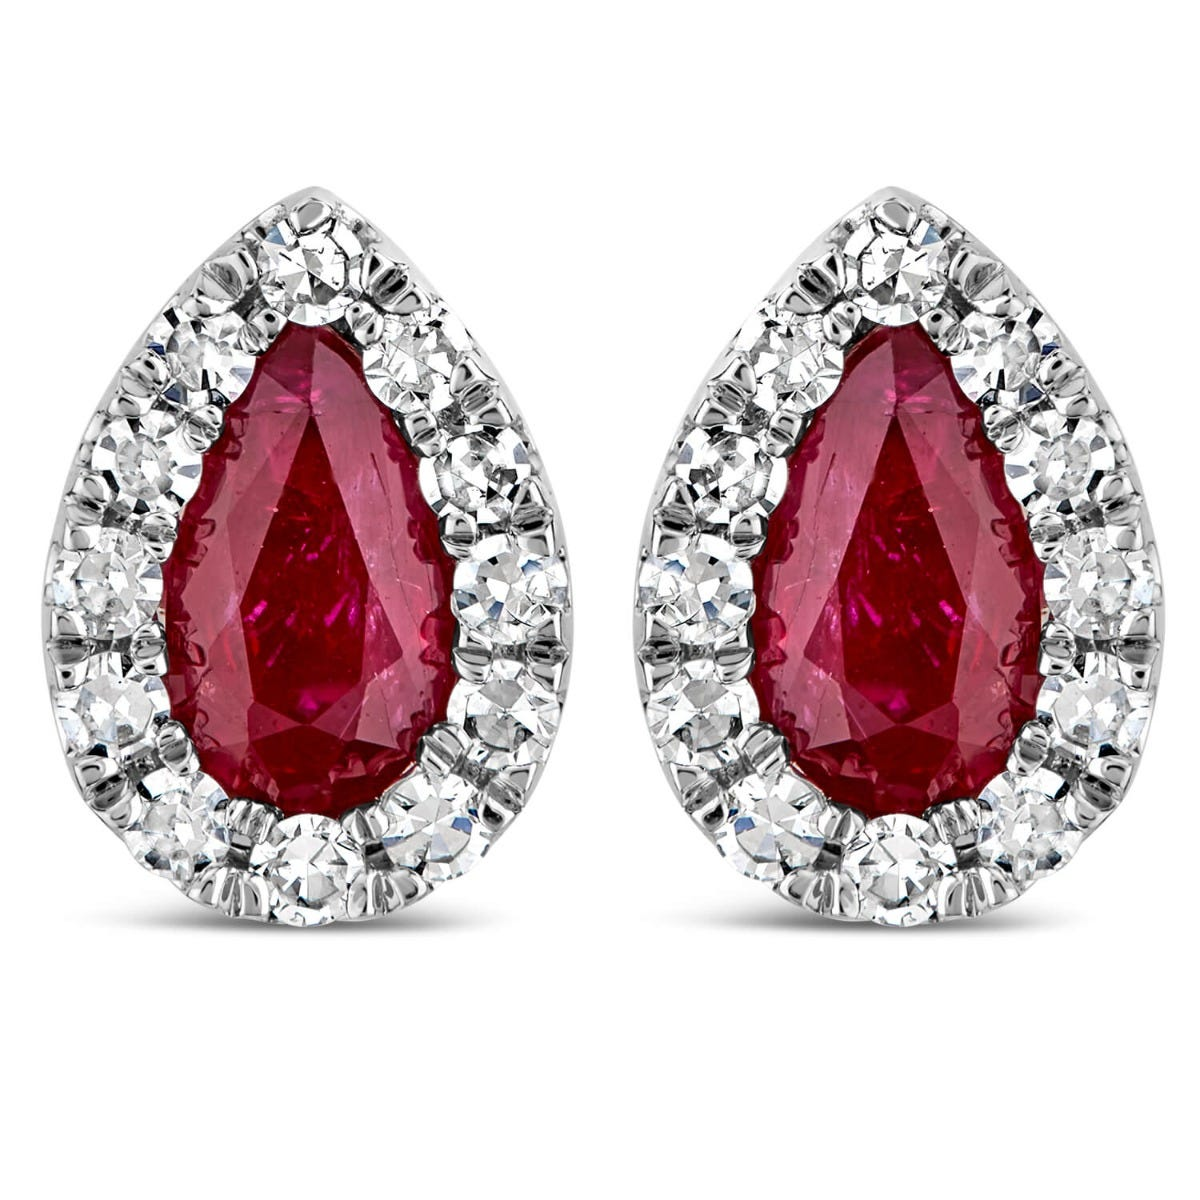 9ct White Gold 0.15ct Diamond and Ruby Pear Stud Earrings